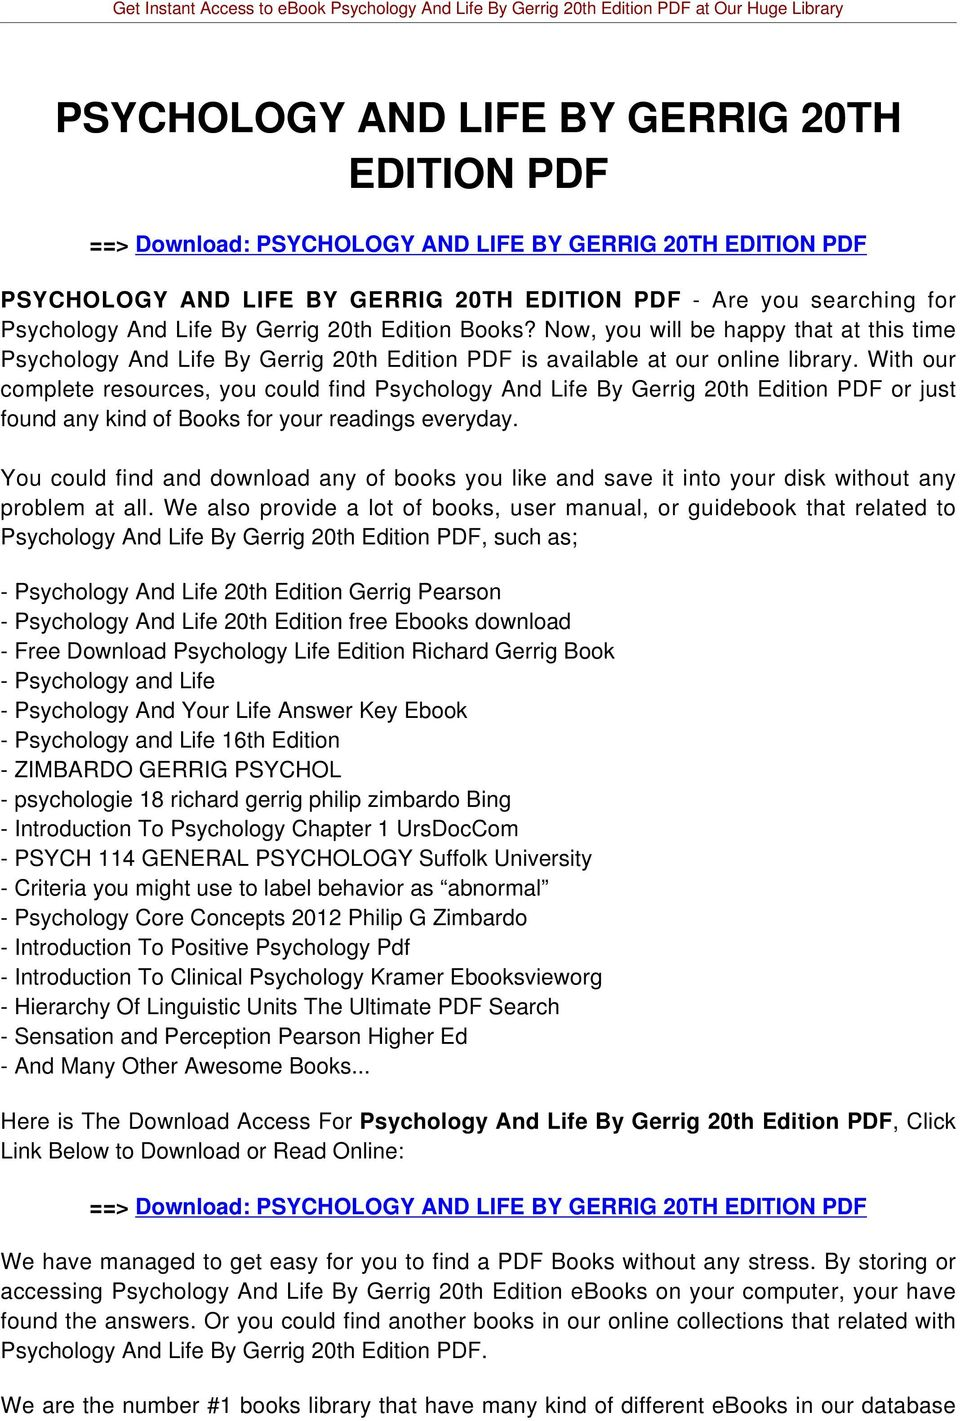 With our complete resources, you could find Psychology And Life By Gerrig 20th Edition PDF or just found any kind of Books for your readings everyday.